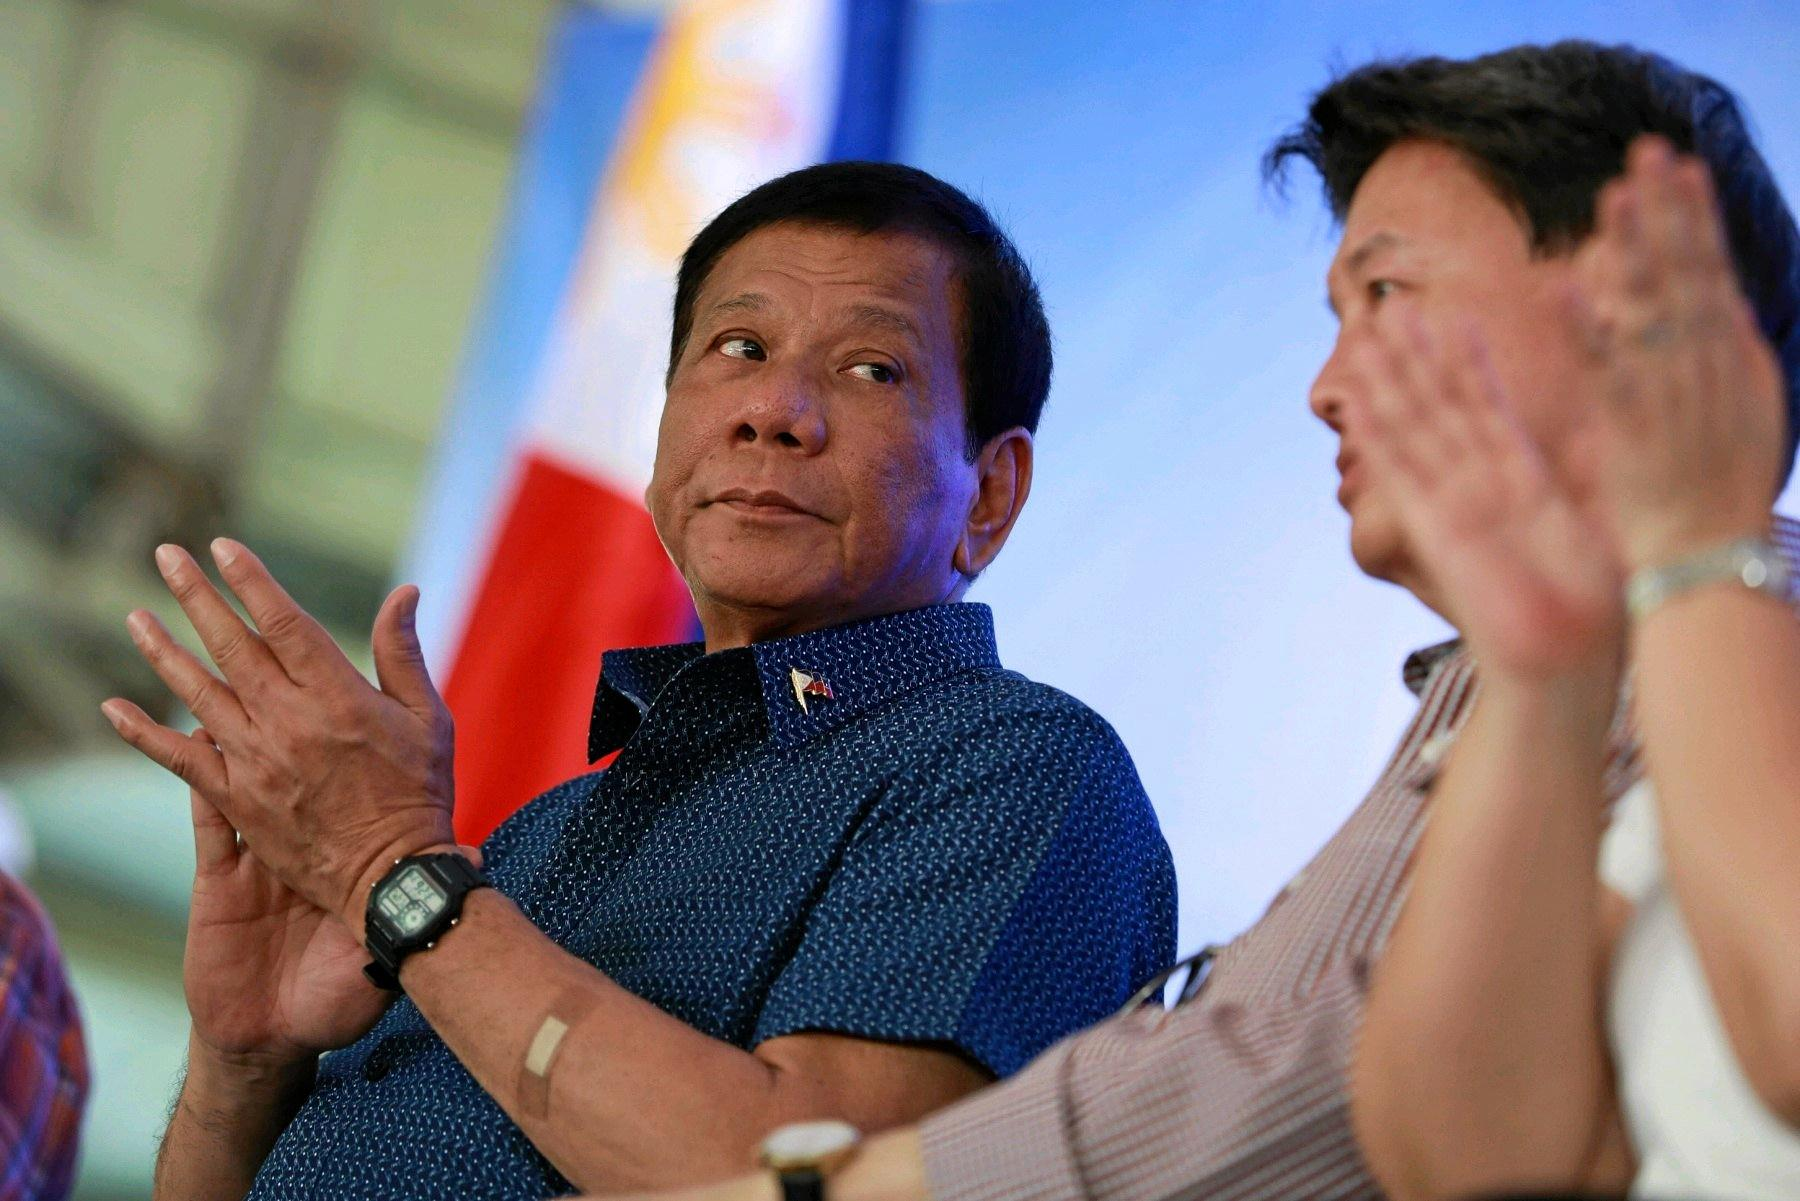 President Rodrigo Duterte, left, has defended adultery, creating controversy in the Philippines.